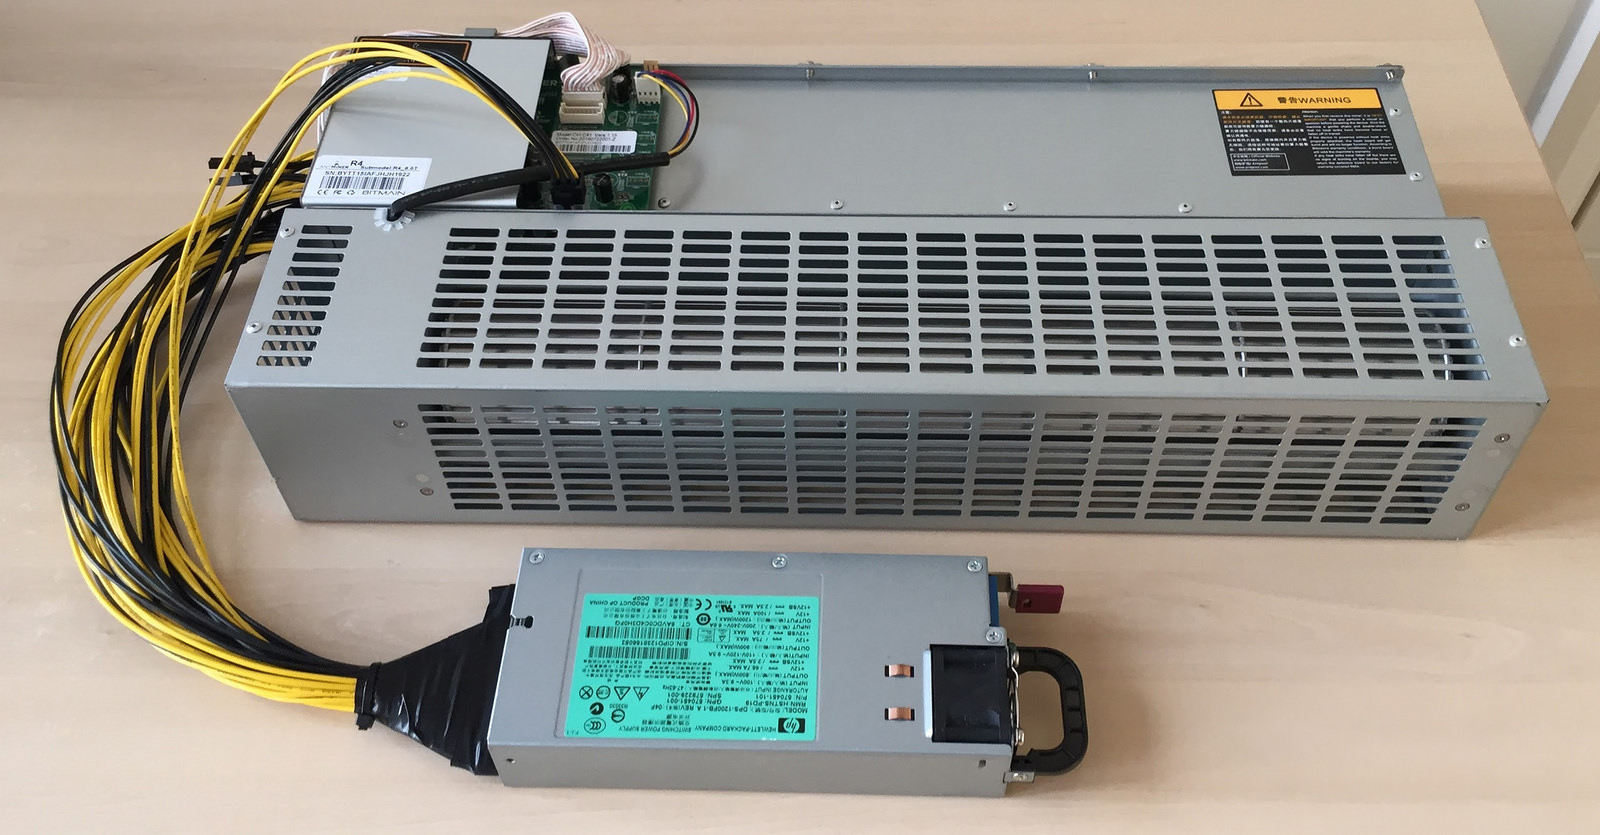 Bitcoin Bitmain Antminer R4 home miner 8.7TH